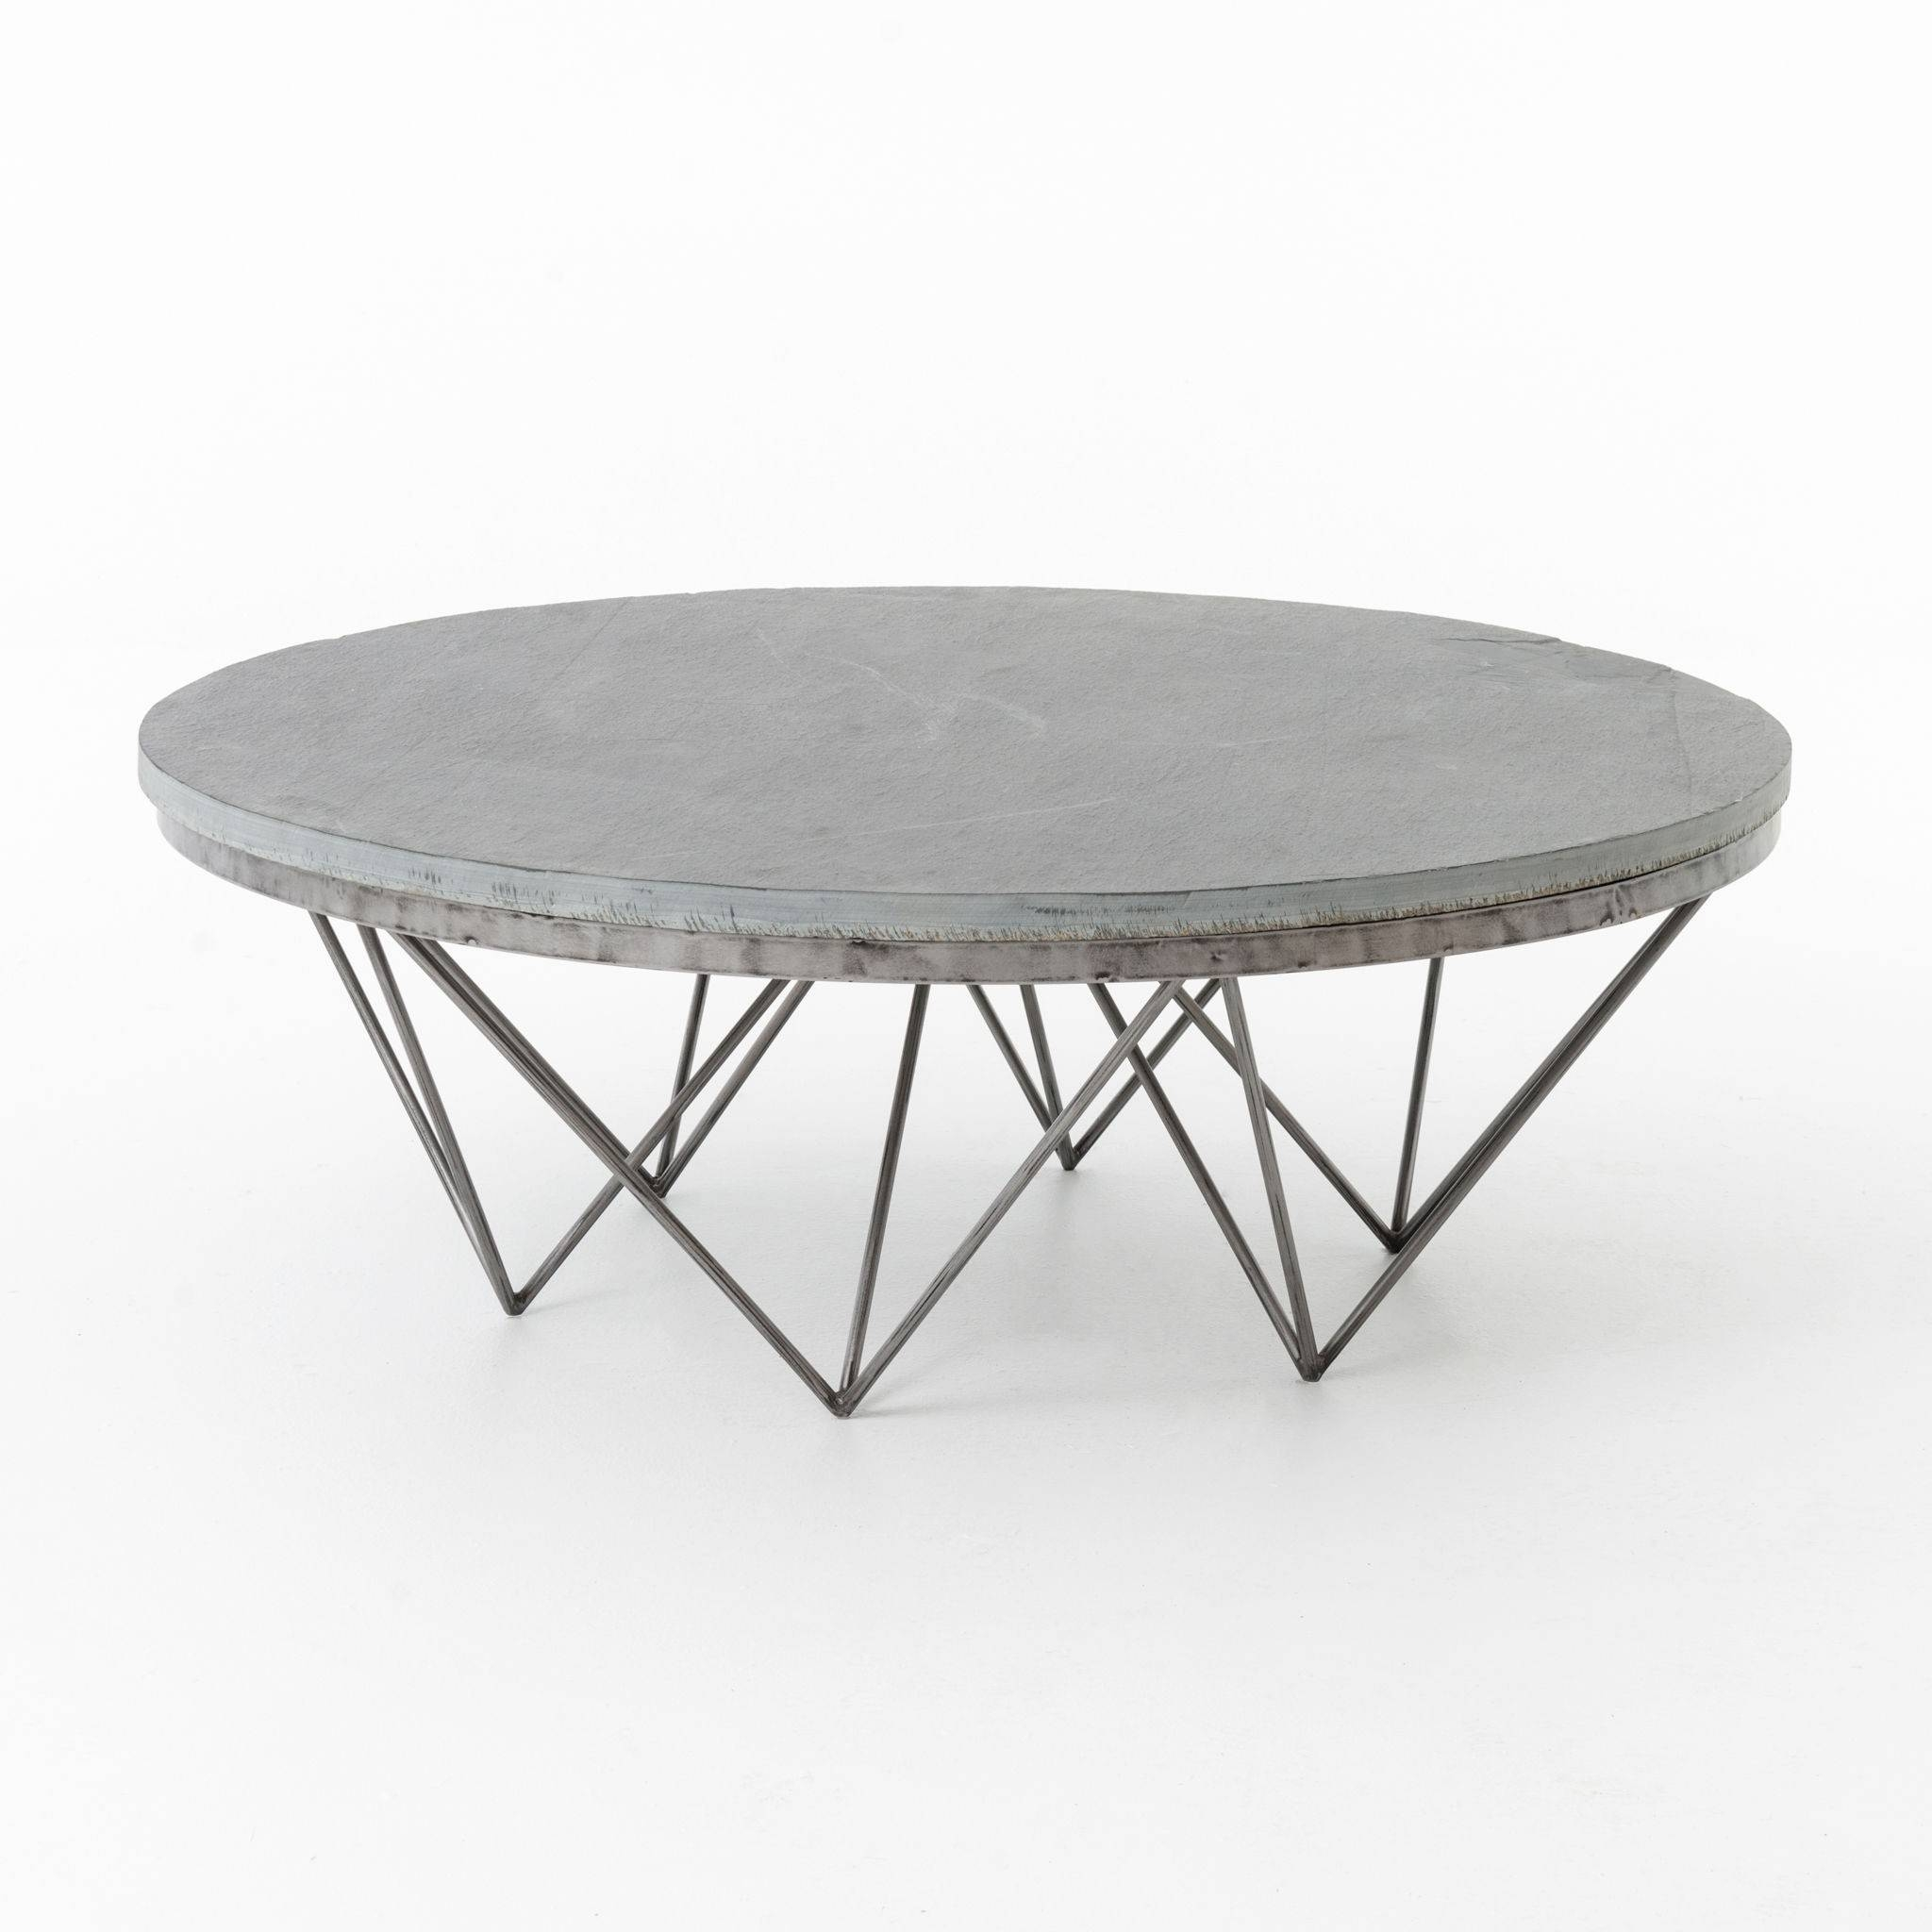 Large Round Coffee Table Coffetable. Riviera Round Coffee Table regarding Round Chrome Coffee Tables (Image 17 of 30)